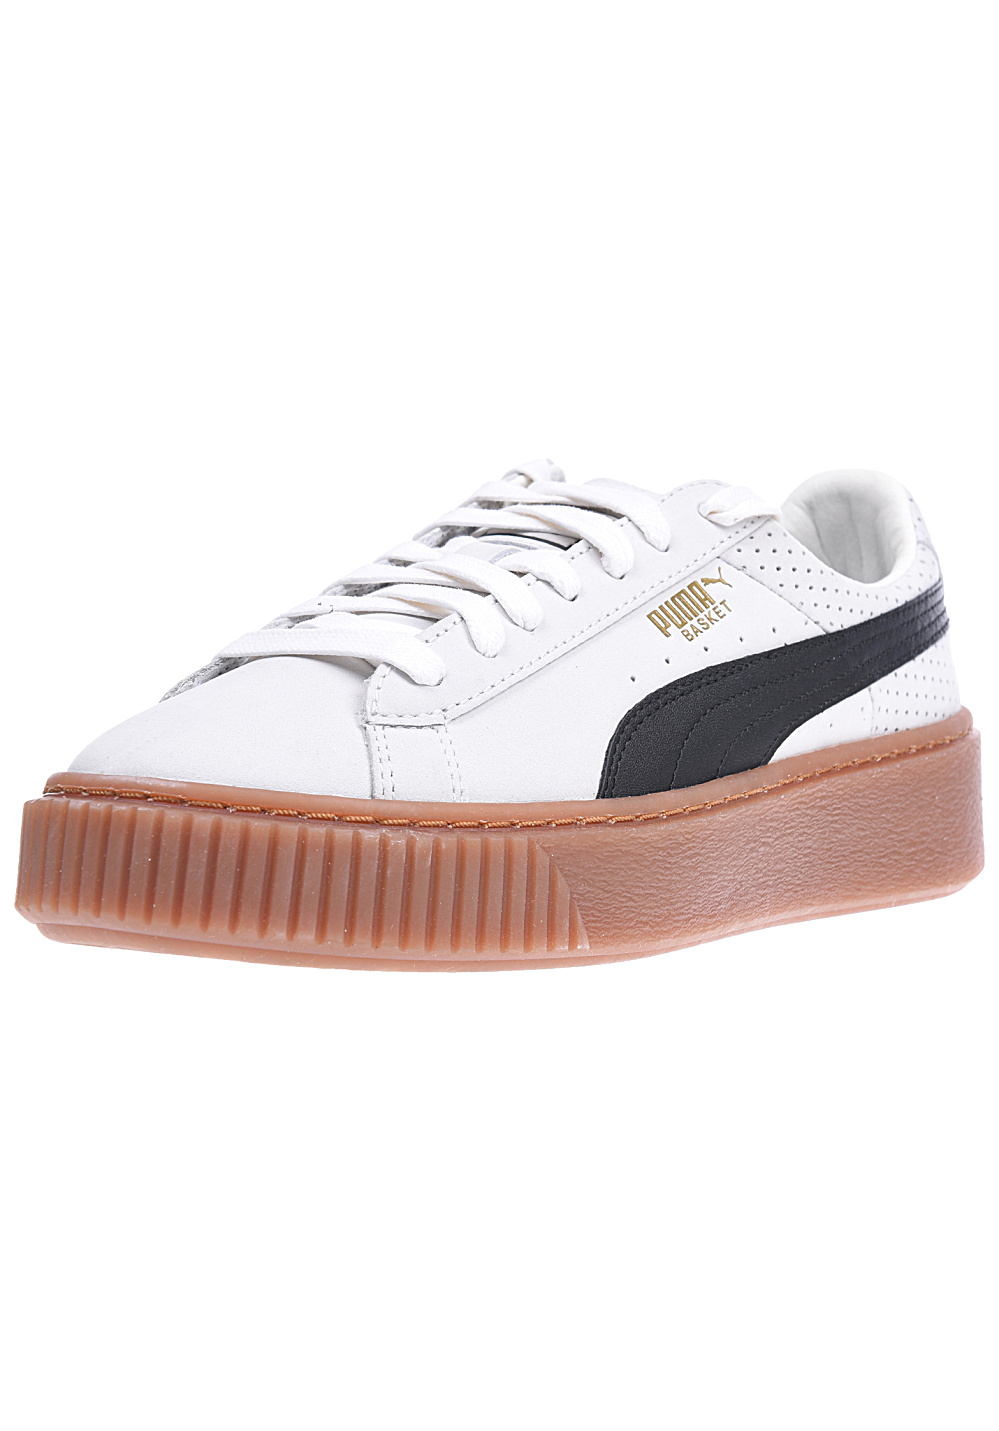 buy online 35560 406a9 Puma Basket Platform Perf Gum - Sneakers for Women - Beige